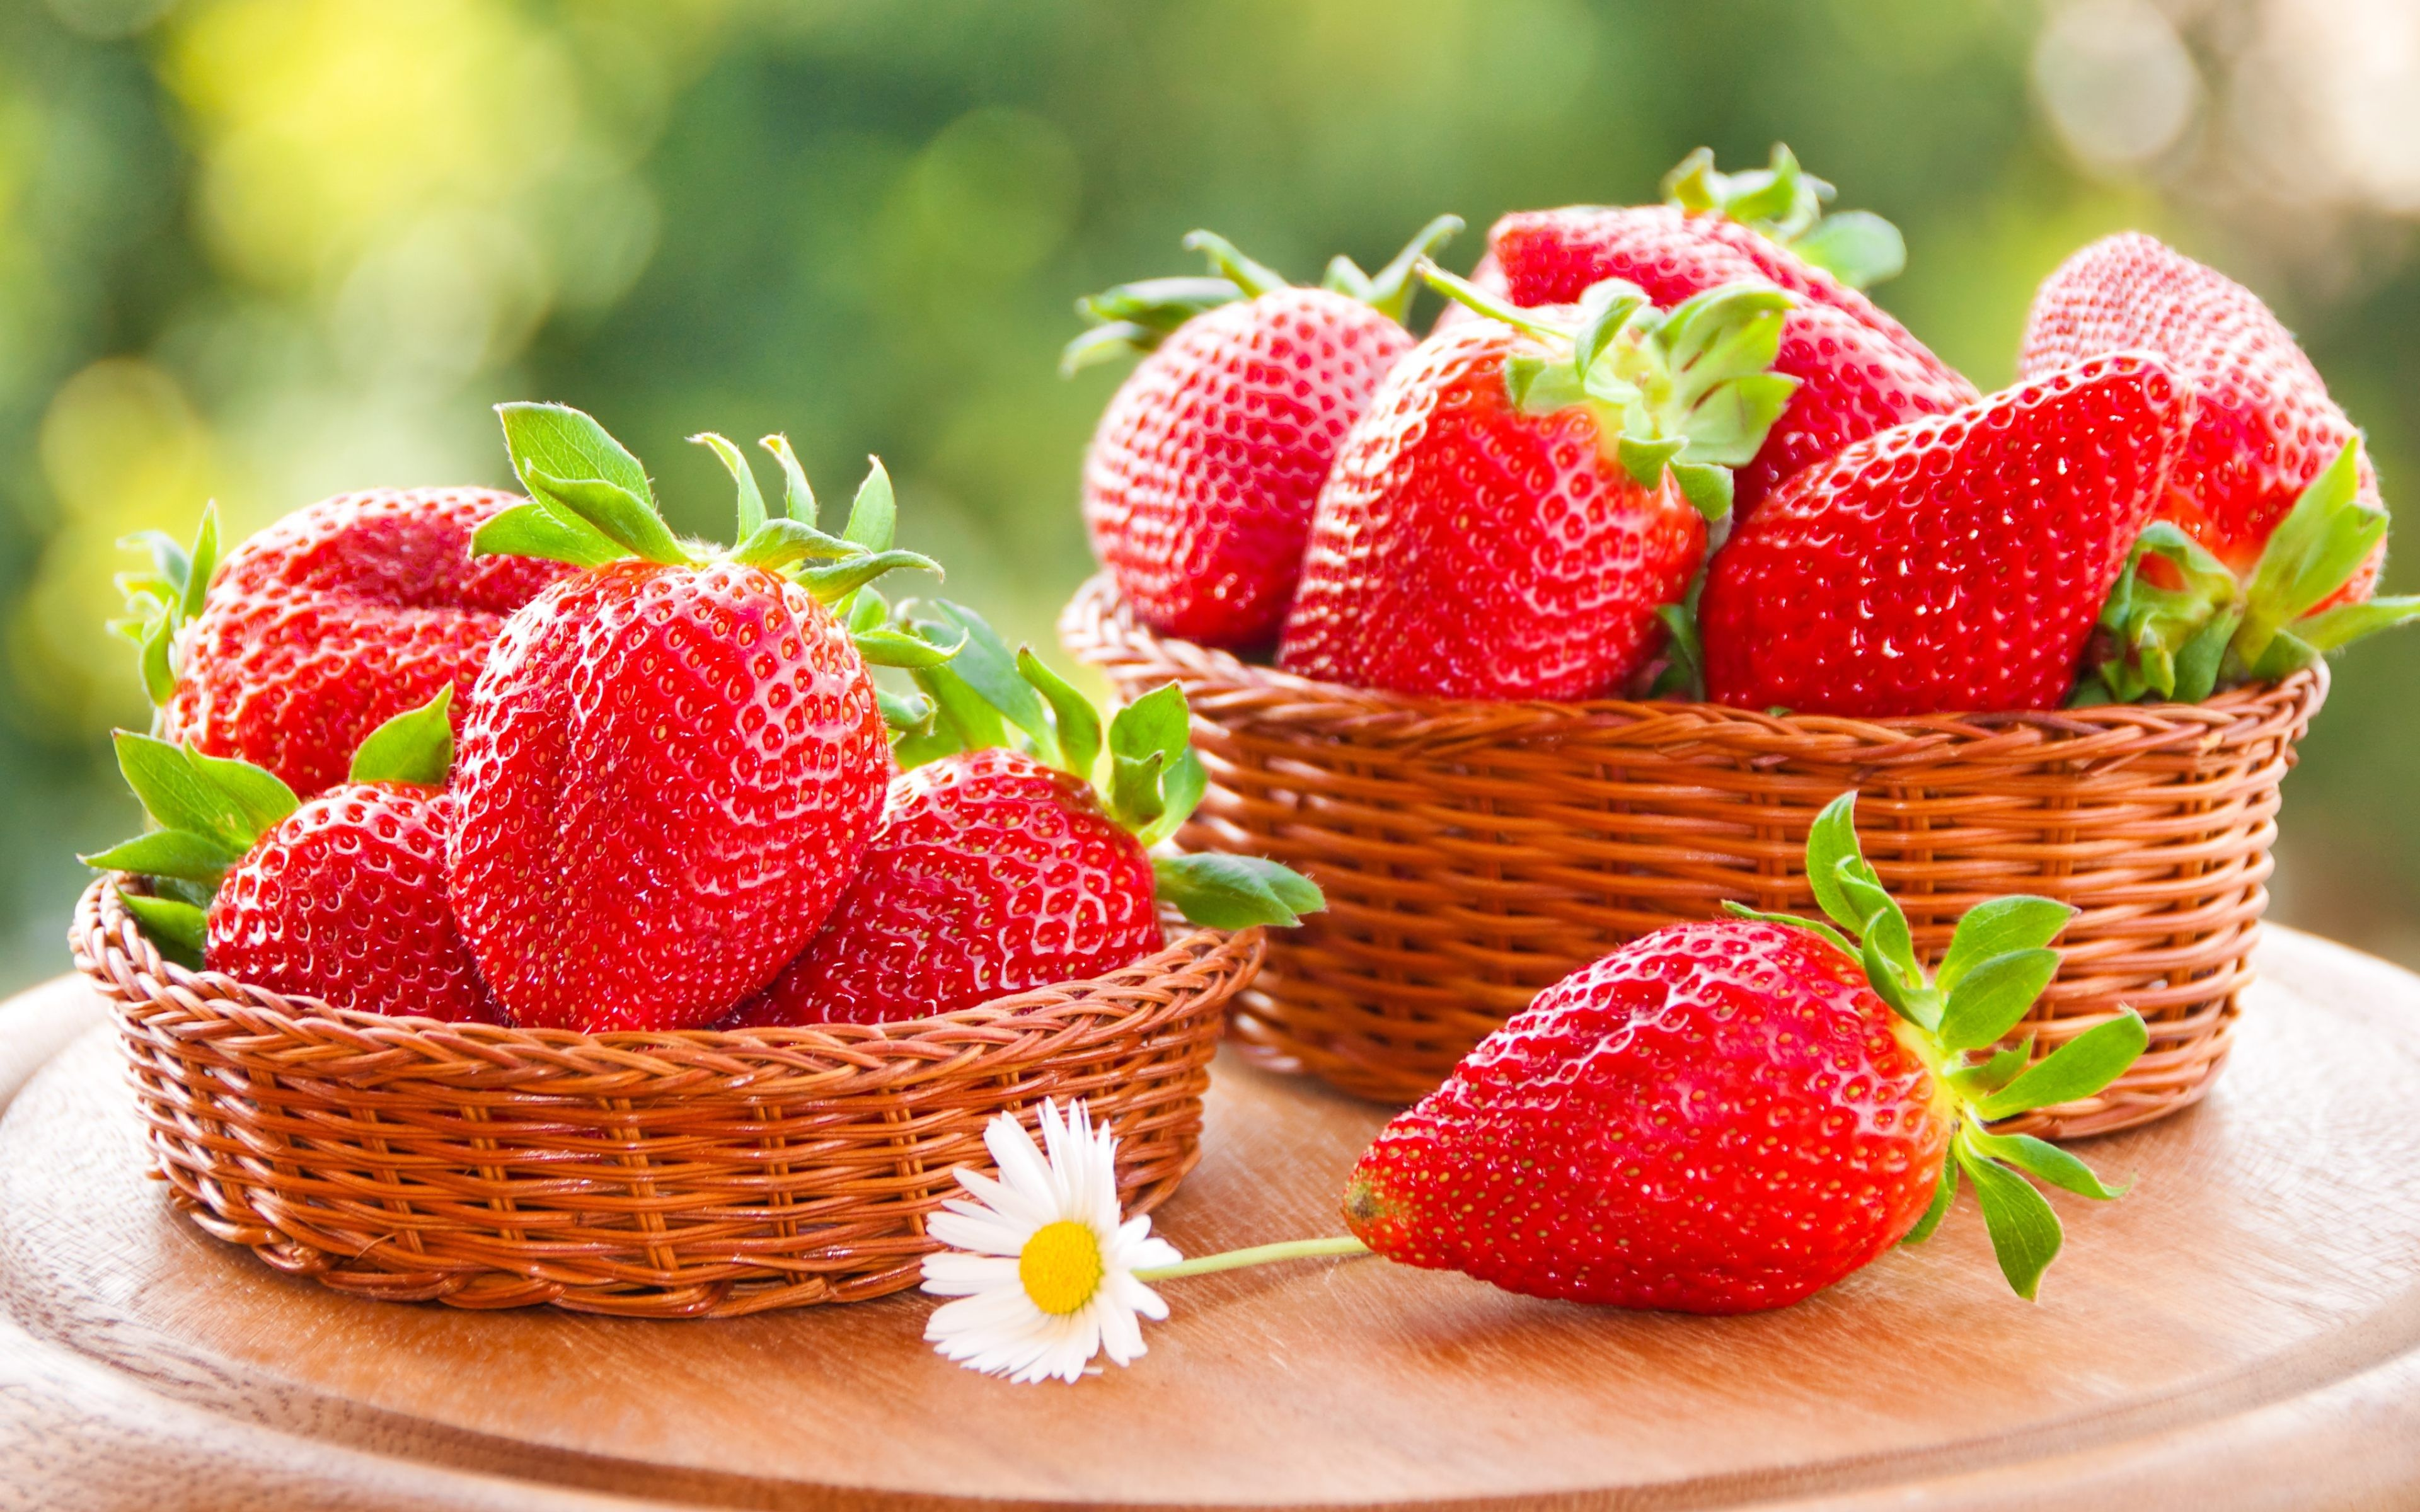 strawberries basket 4k ultra hd wallpaper Favorite